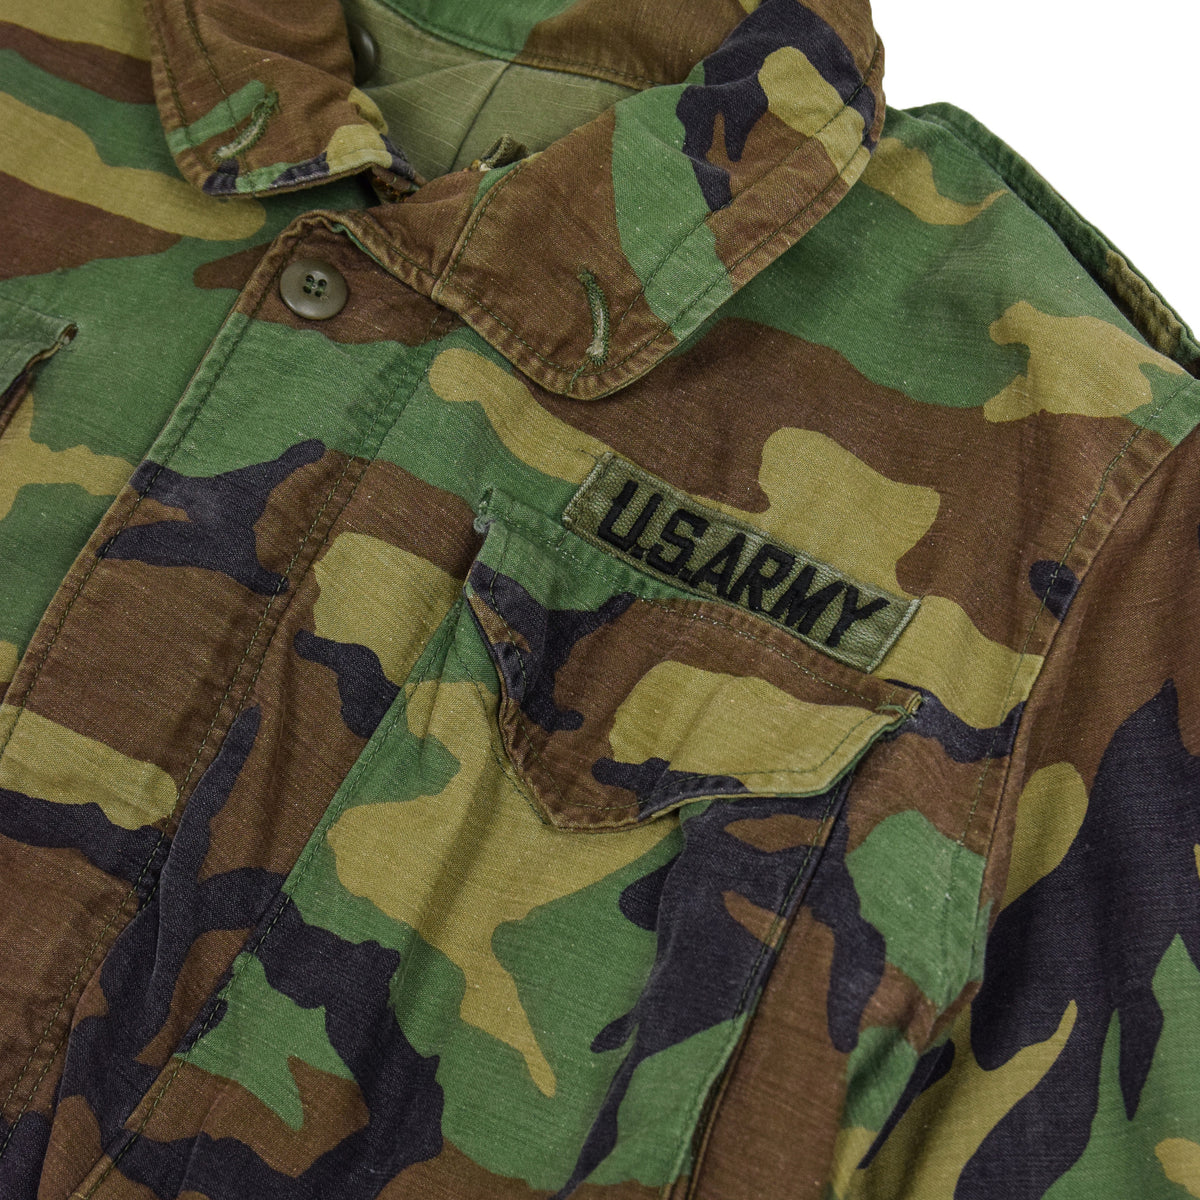 Vintage 80s US Army M-65 Woodland Camouflage Field Coat Military Jacket S Long collar